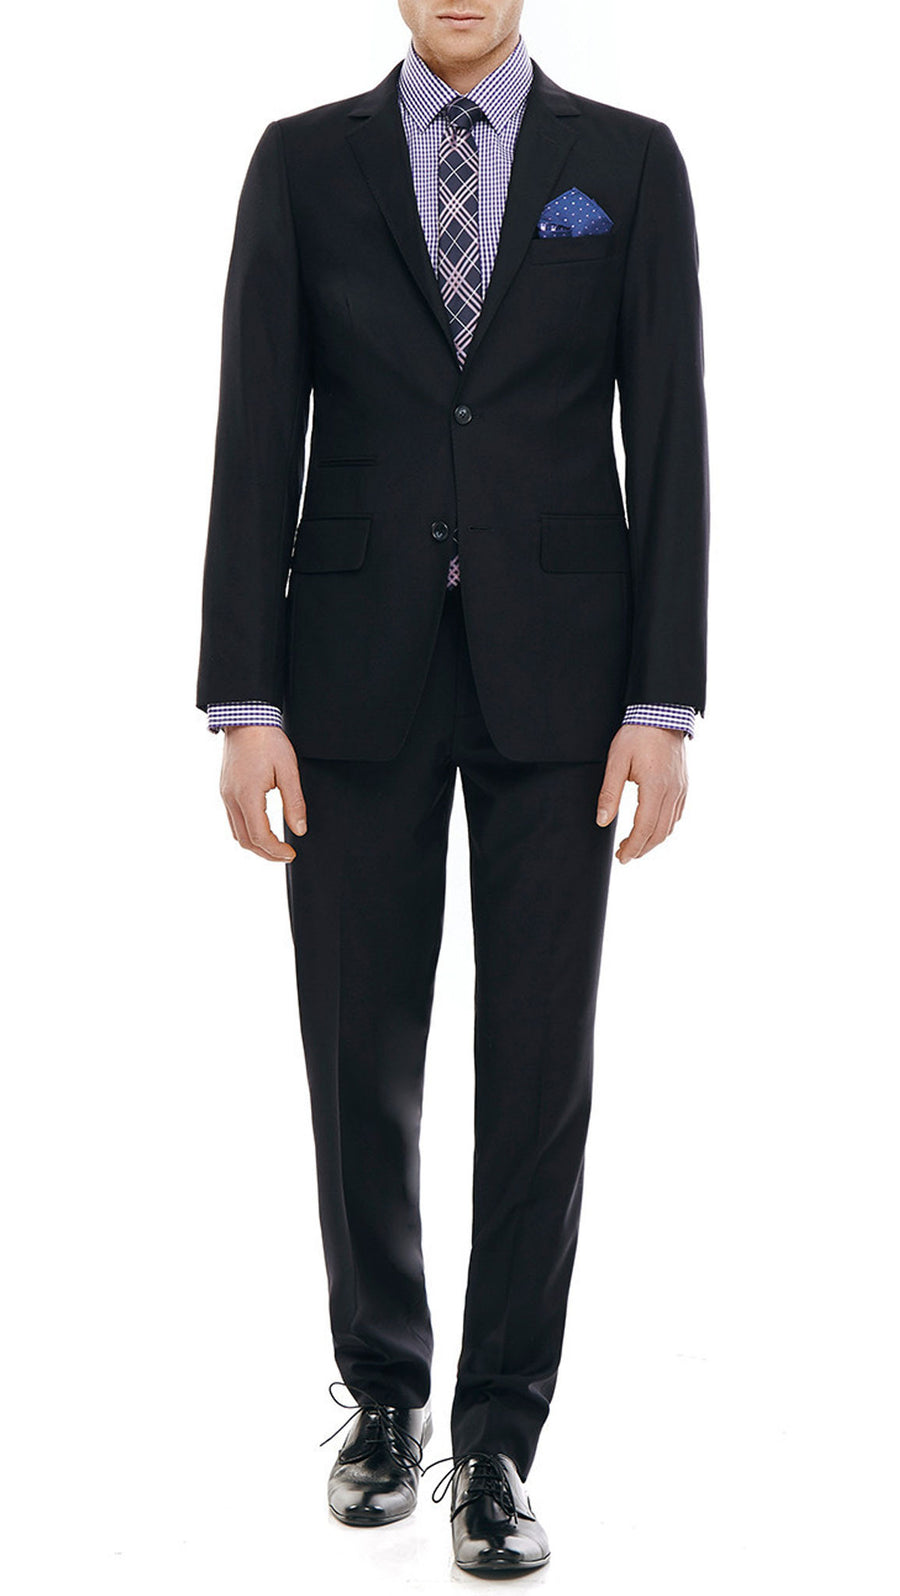 Bell & Barnett Slim Fit Wool Suit in Black